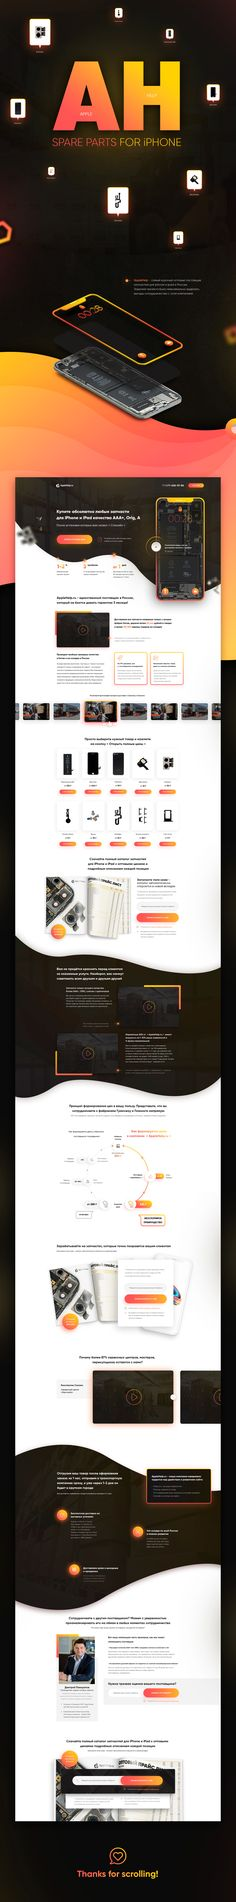 iPhone spare parts - Landing page | PARALINES on Behance